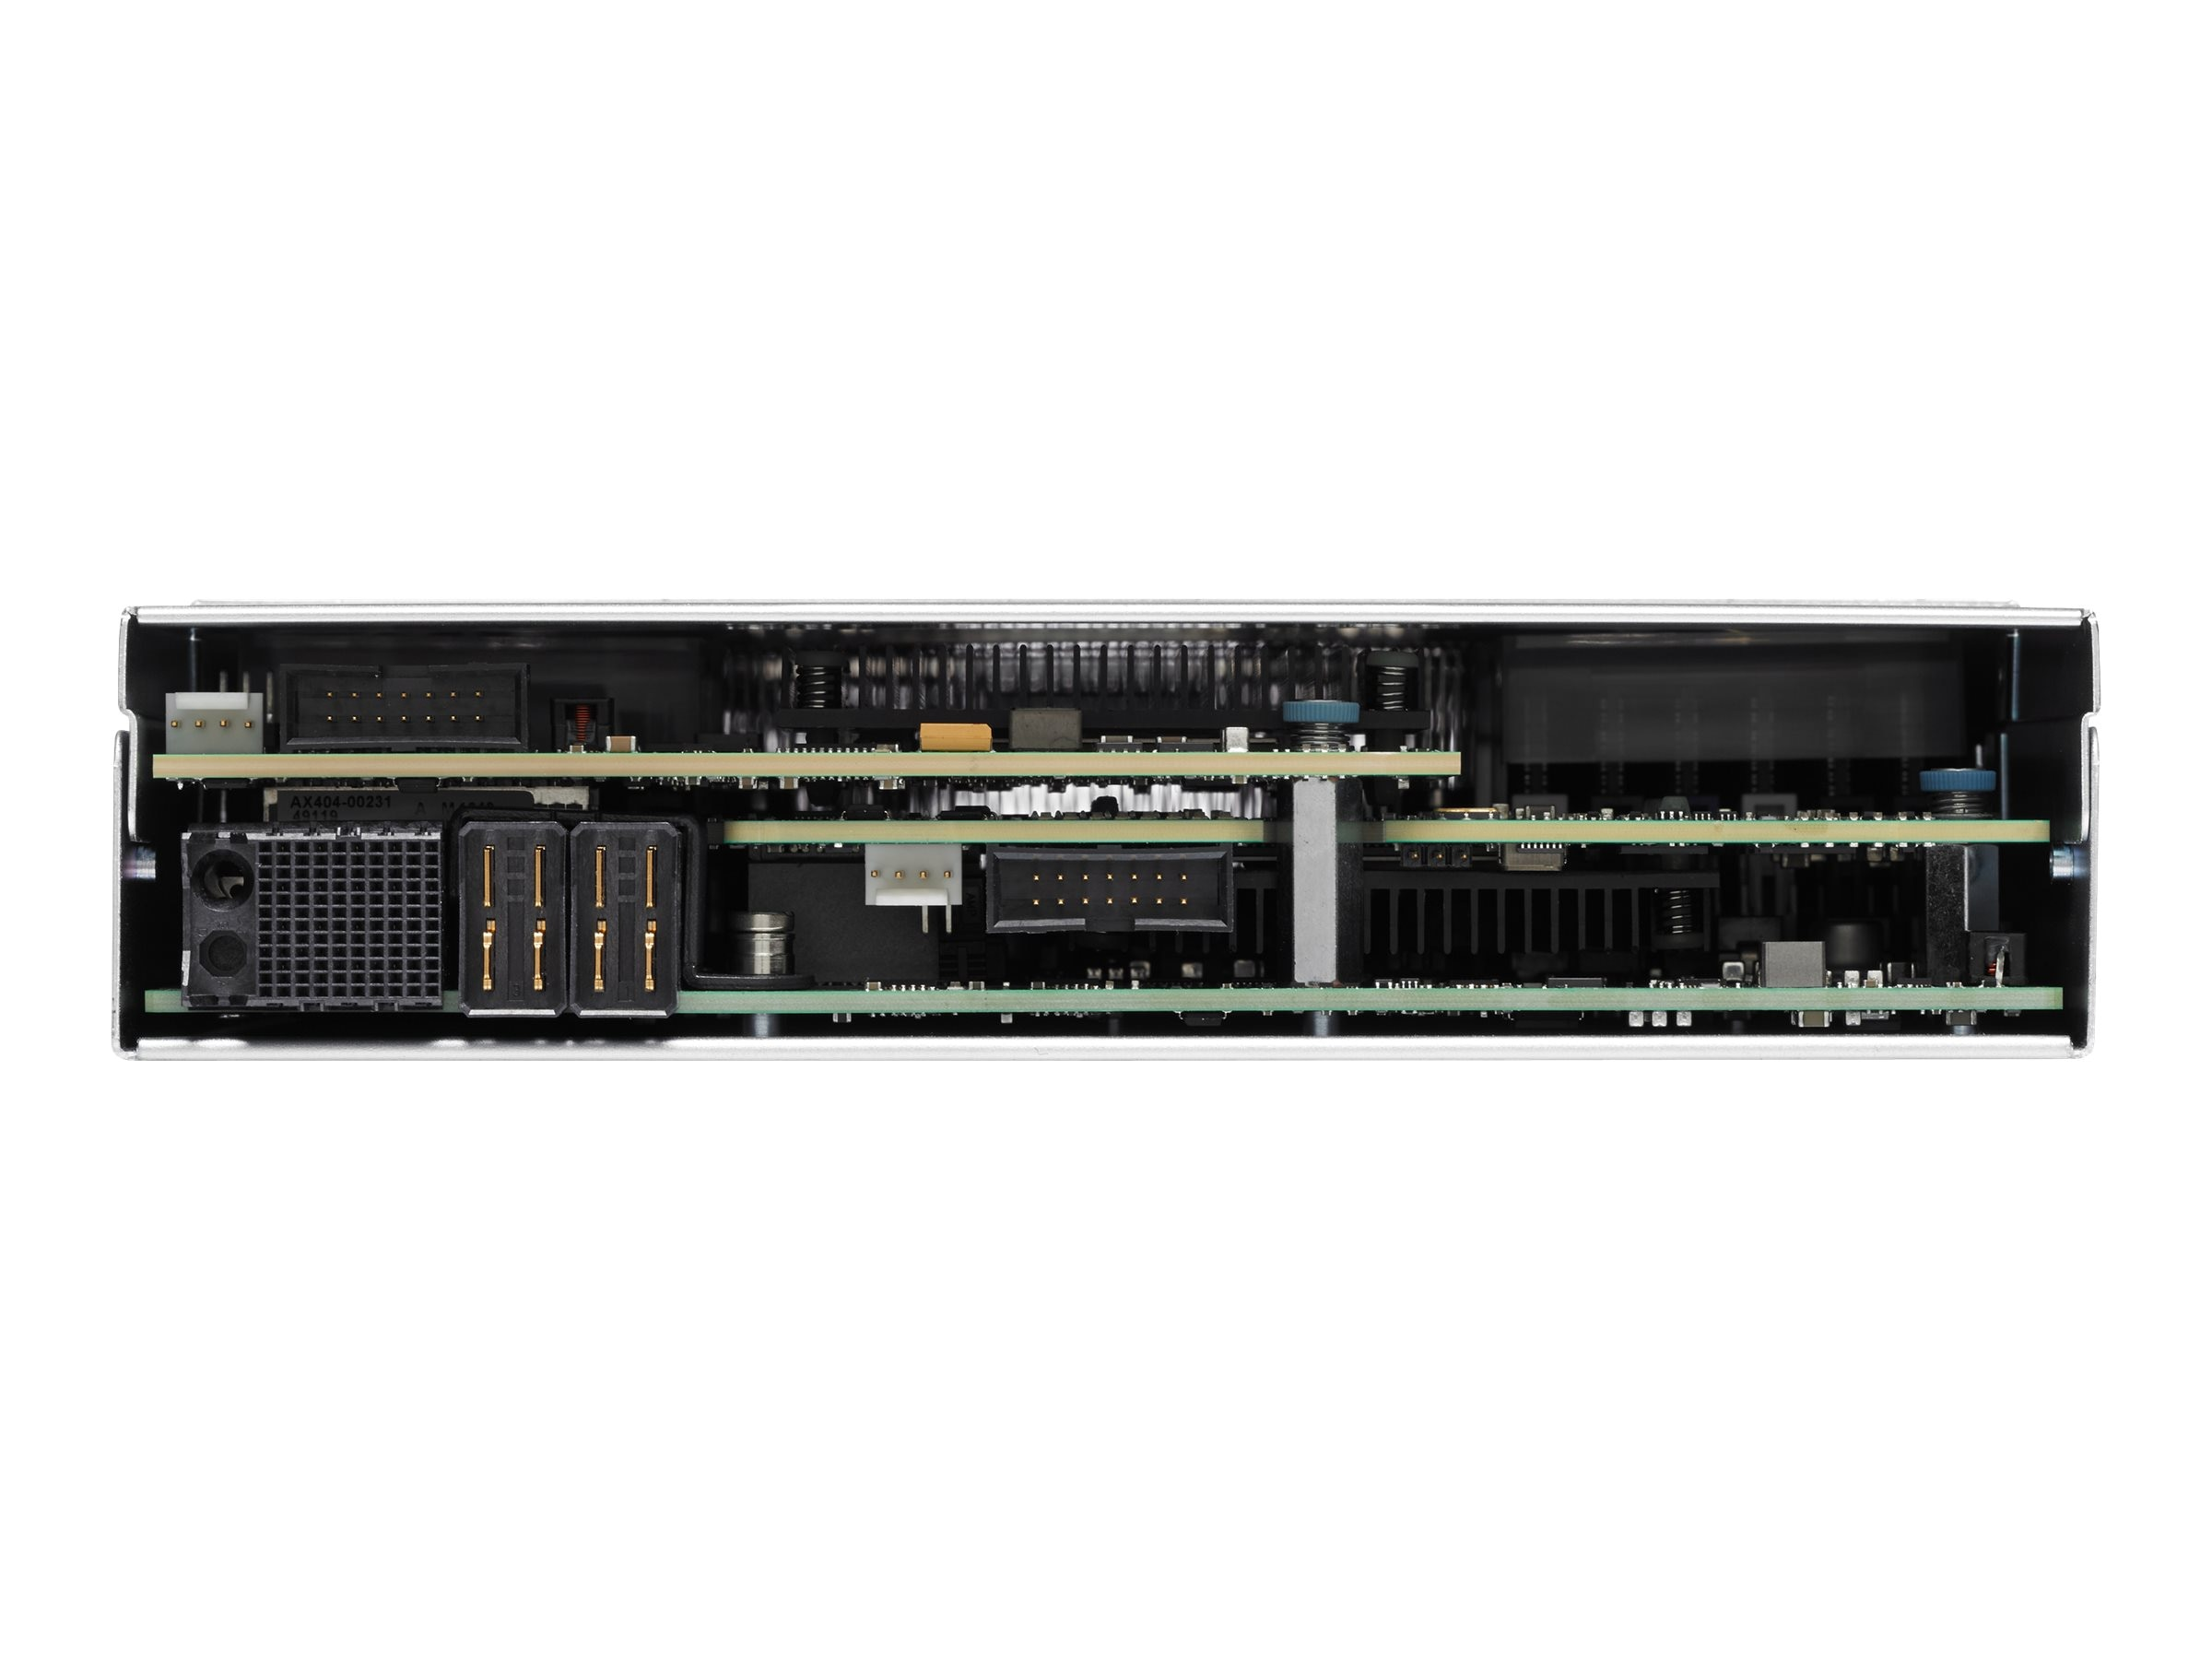 Cisco UPS Smart Play Select B200 M4 High Core 1 Blade (2x)Xeon E5-2698 v3 256GB VIC1340, UCS-SPL-B200M4-C1